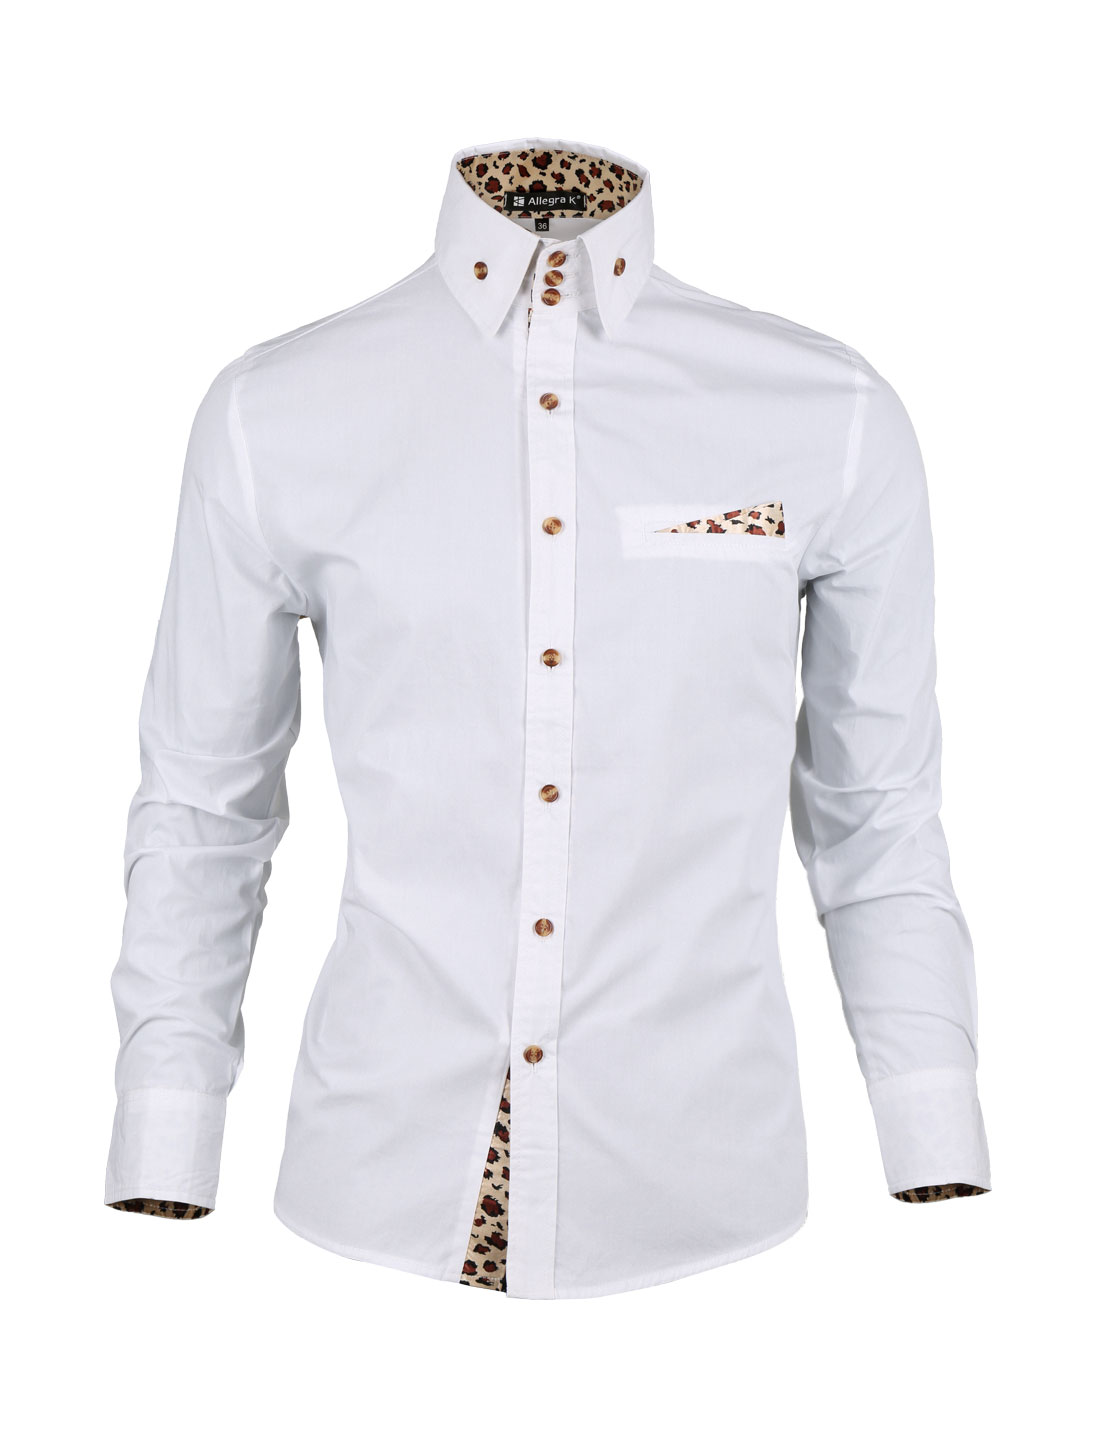 Men Single Breasted Leopard Lining Buttons Front Shirt White M